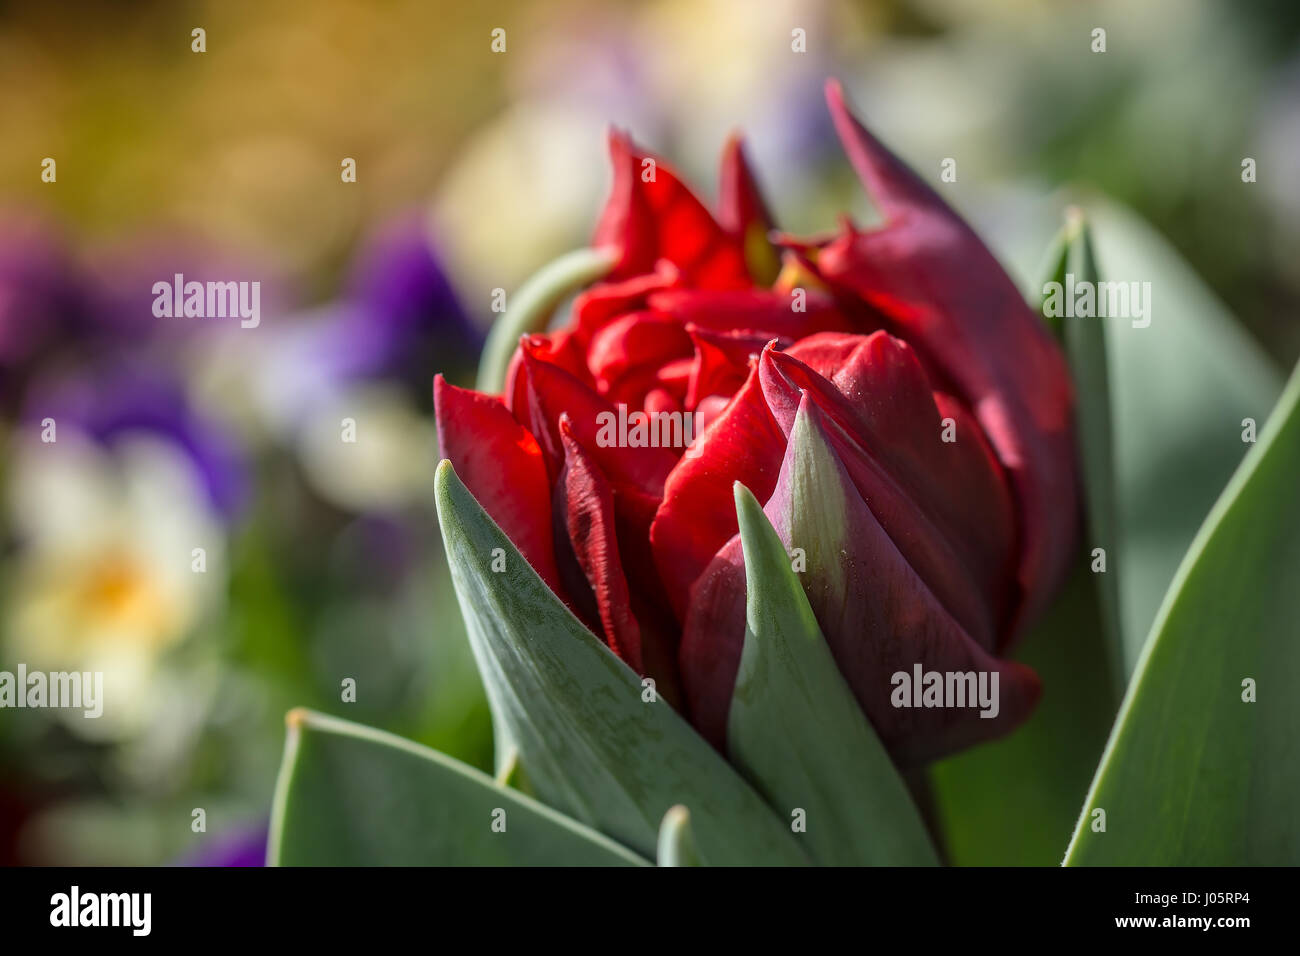 Beautiful red tulip with blurred pansies in the background. Stock Photo